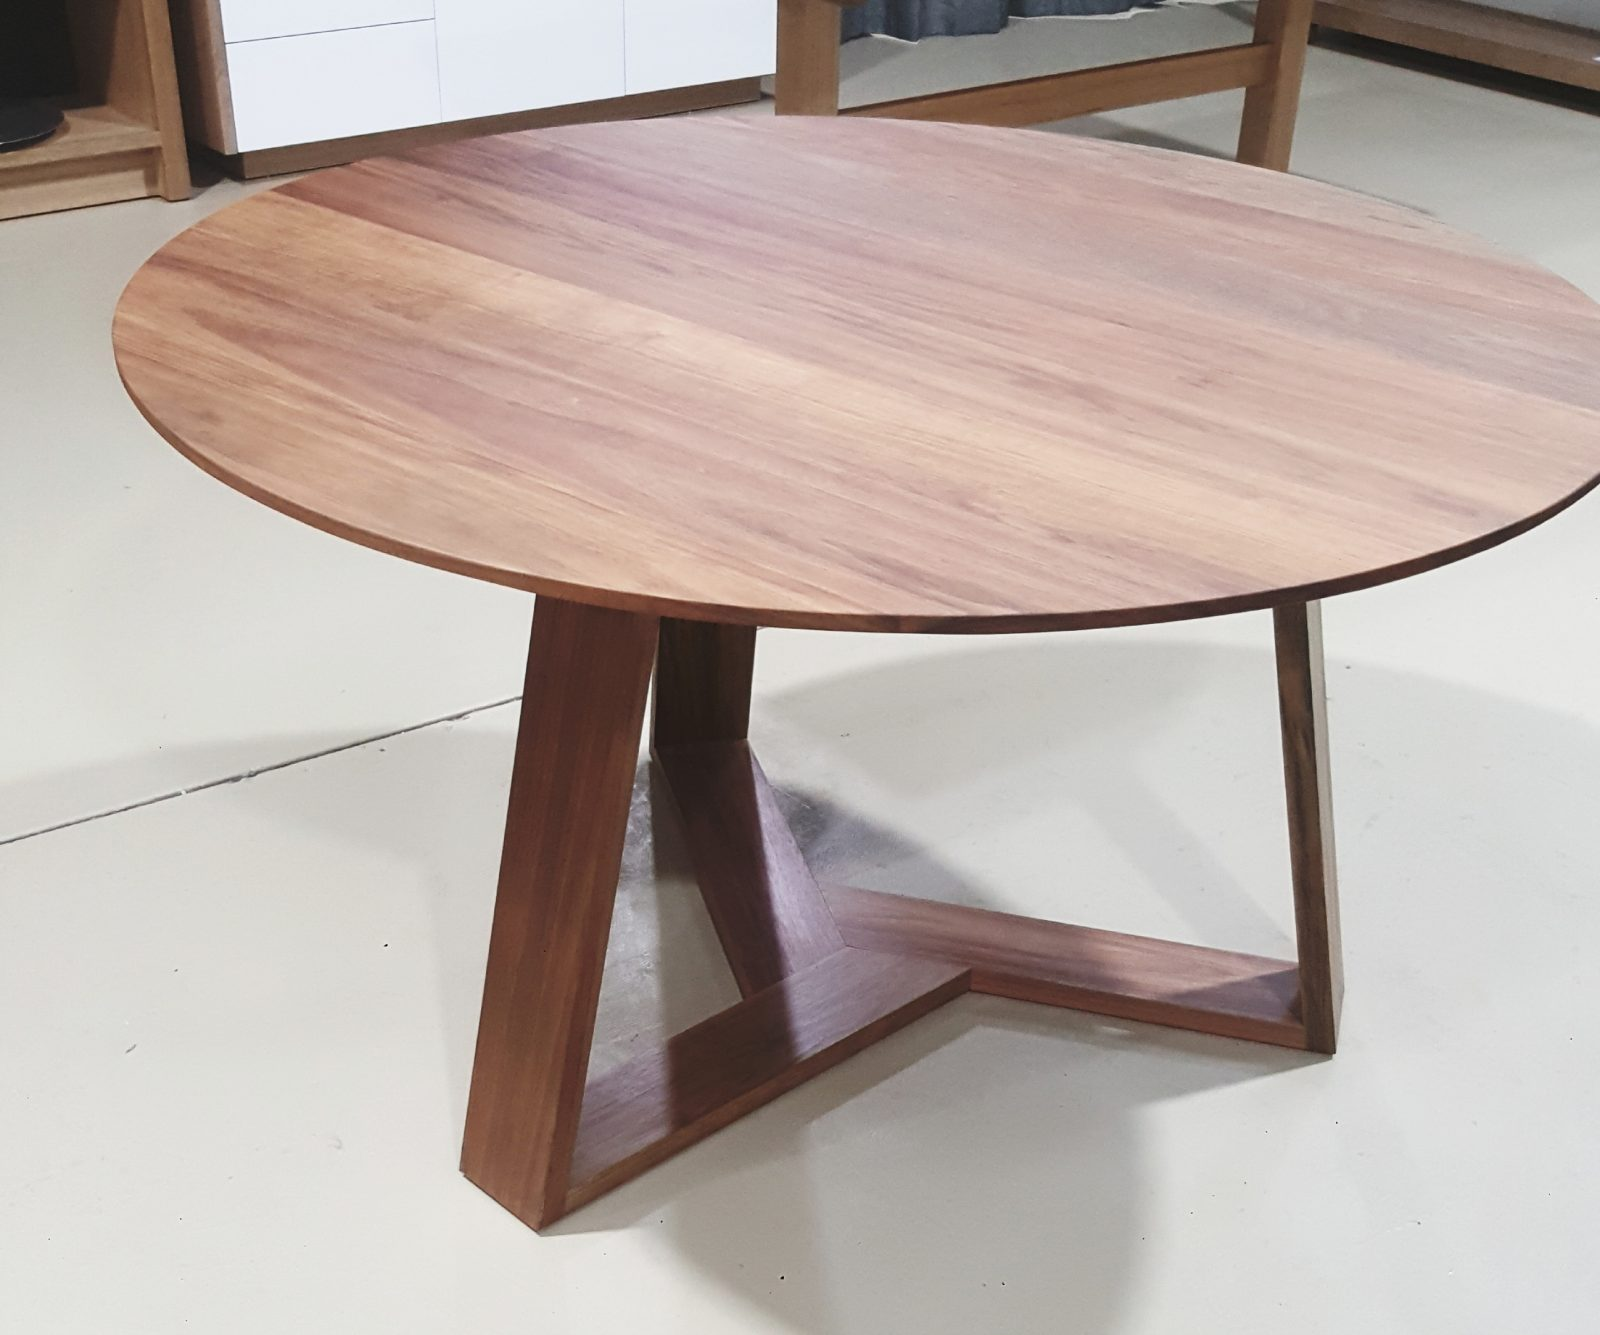 Henley Dining Table Image